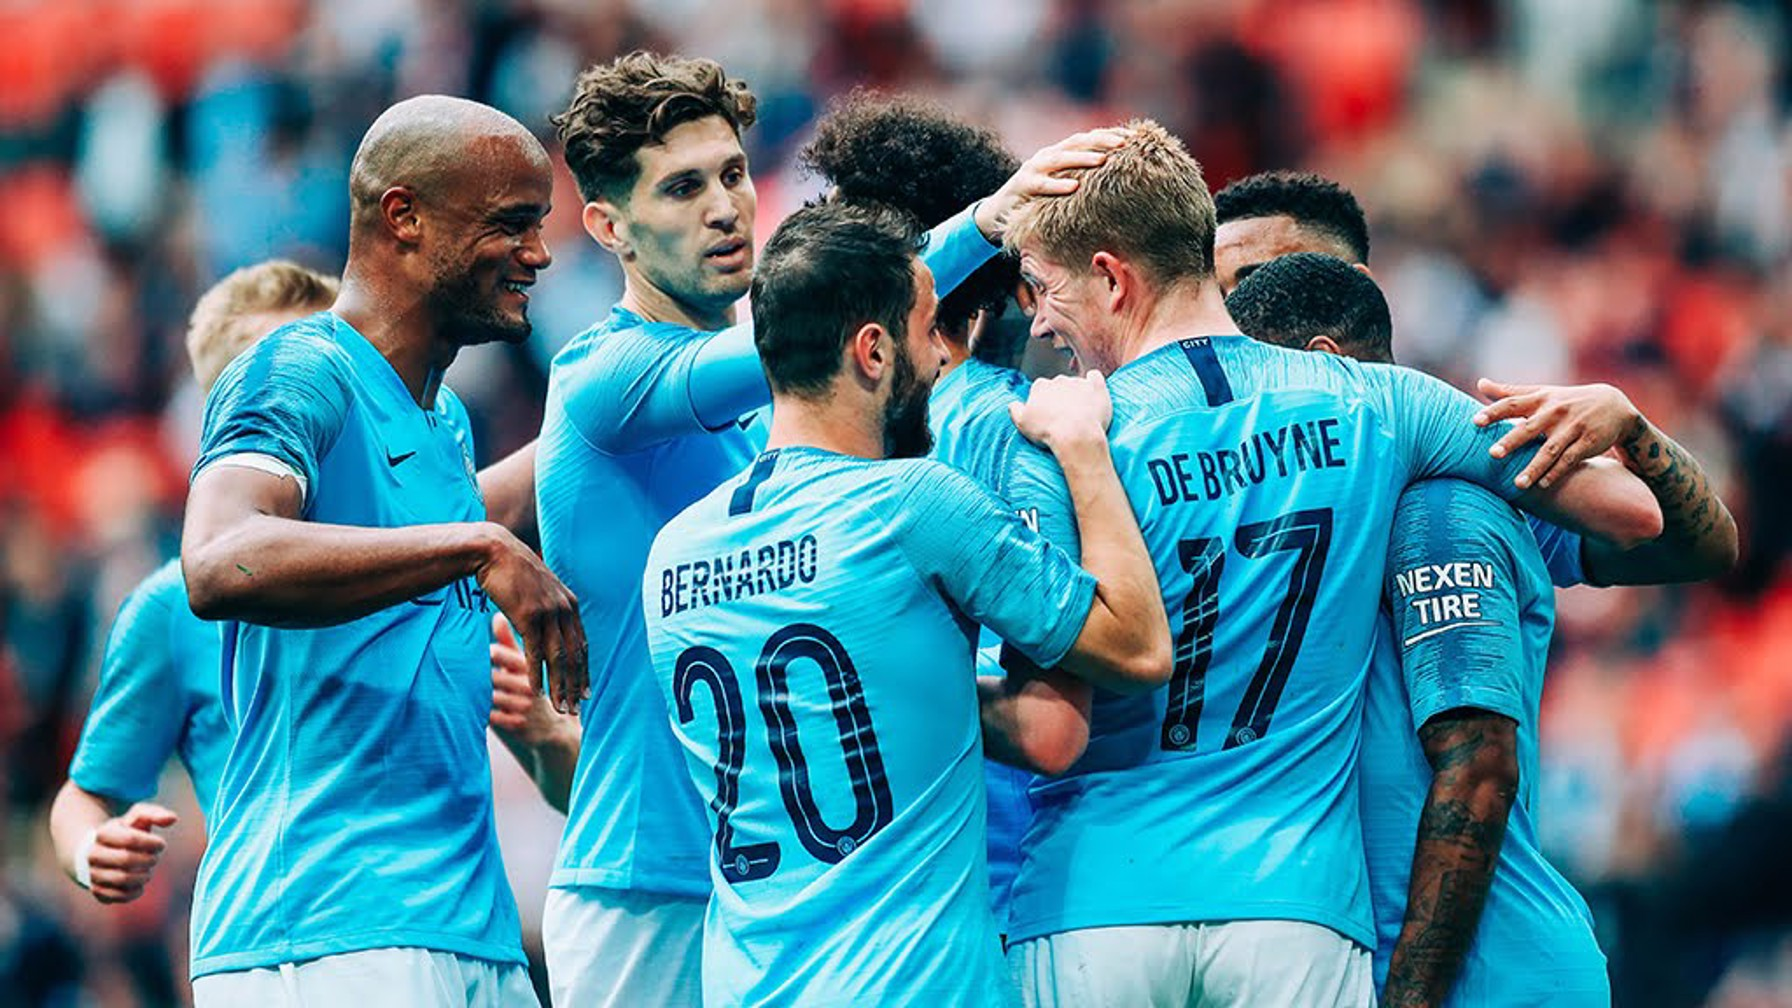 DE BRUYNE DELIGHT: The team congratulate the Belgian for his goal